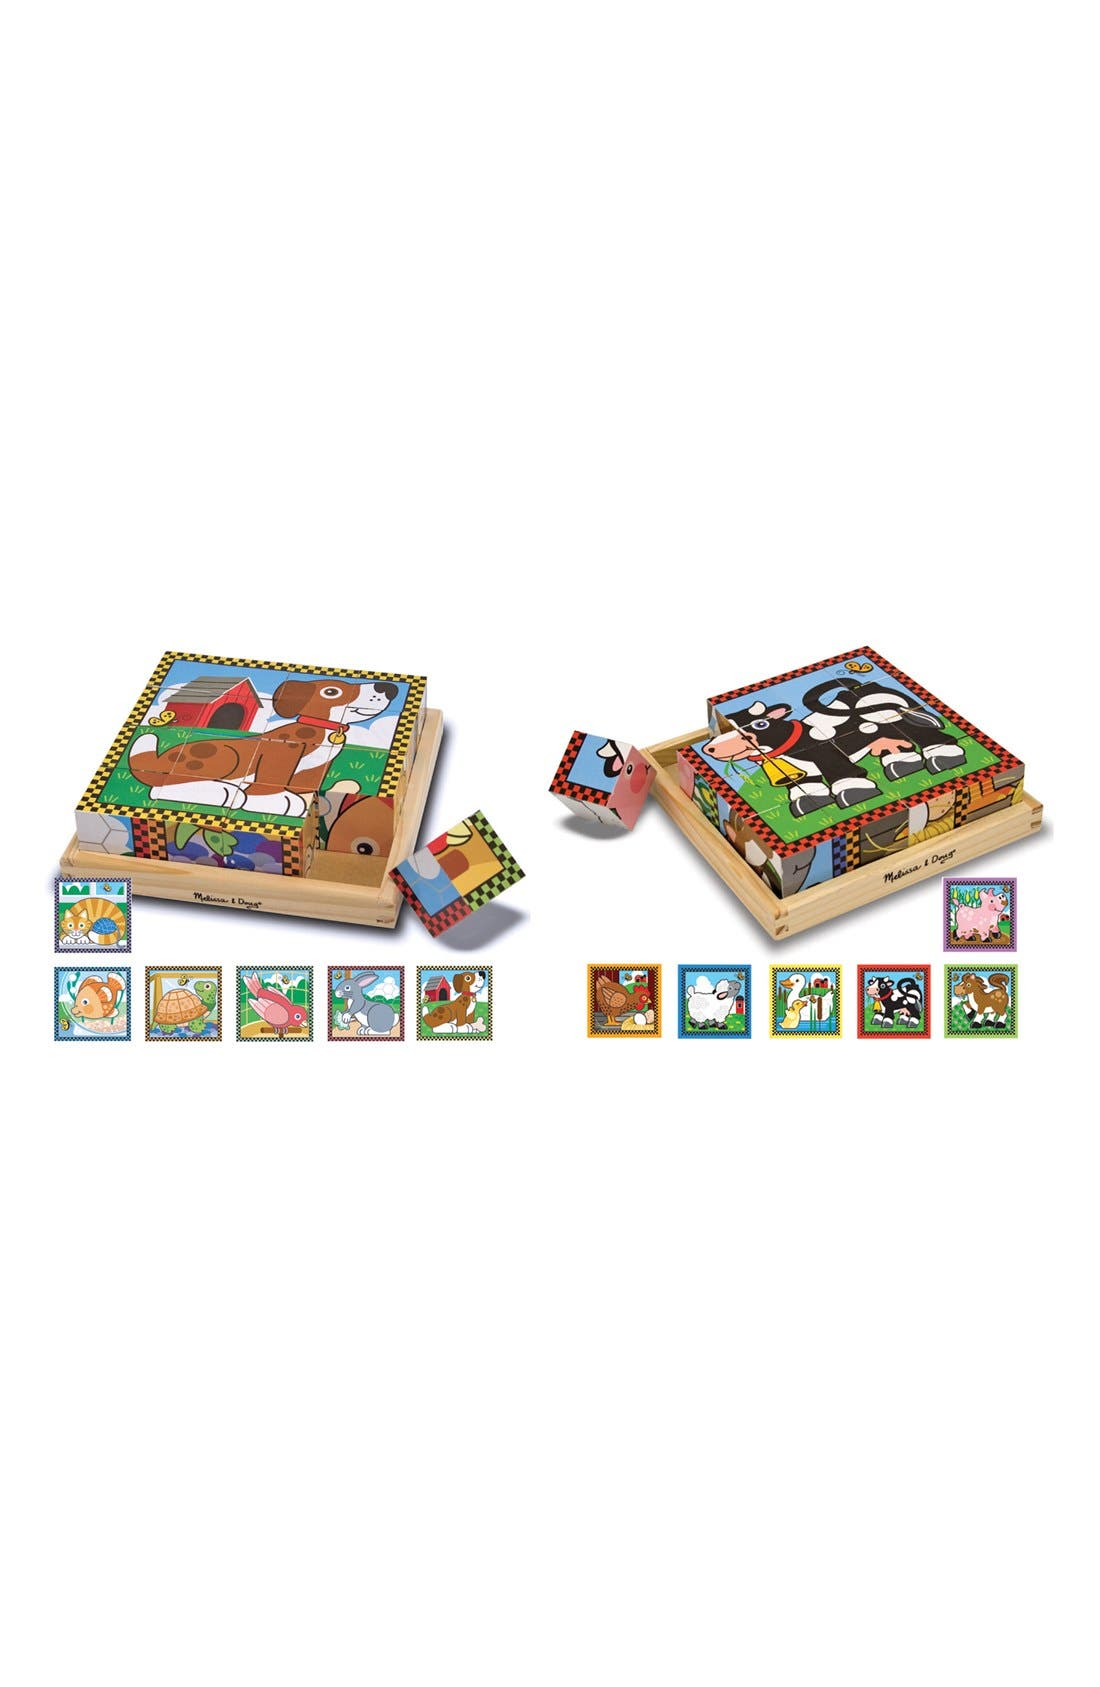 Alternate Image 1 Selected - Melissa & Doug Cube Puzzles (Set of 2)